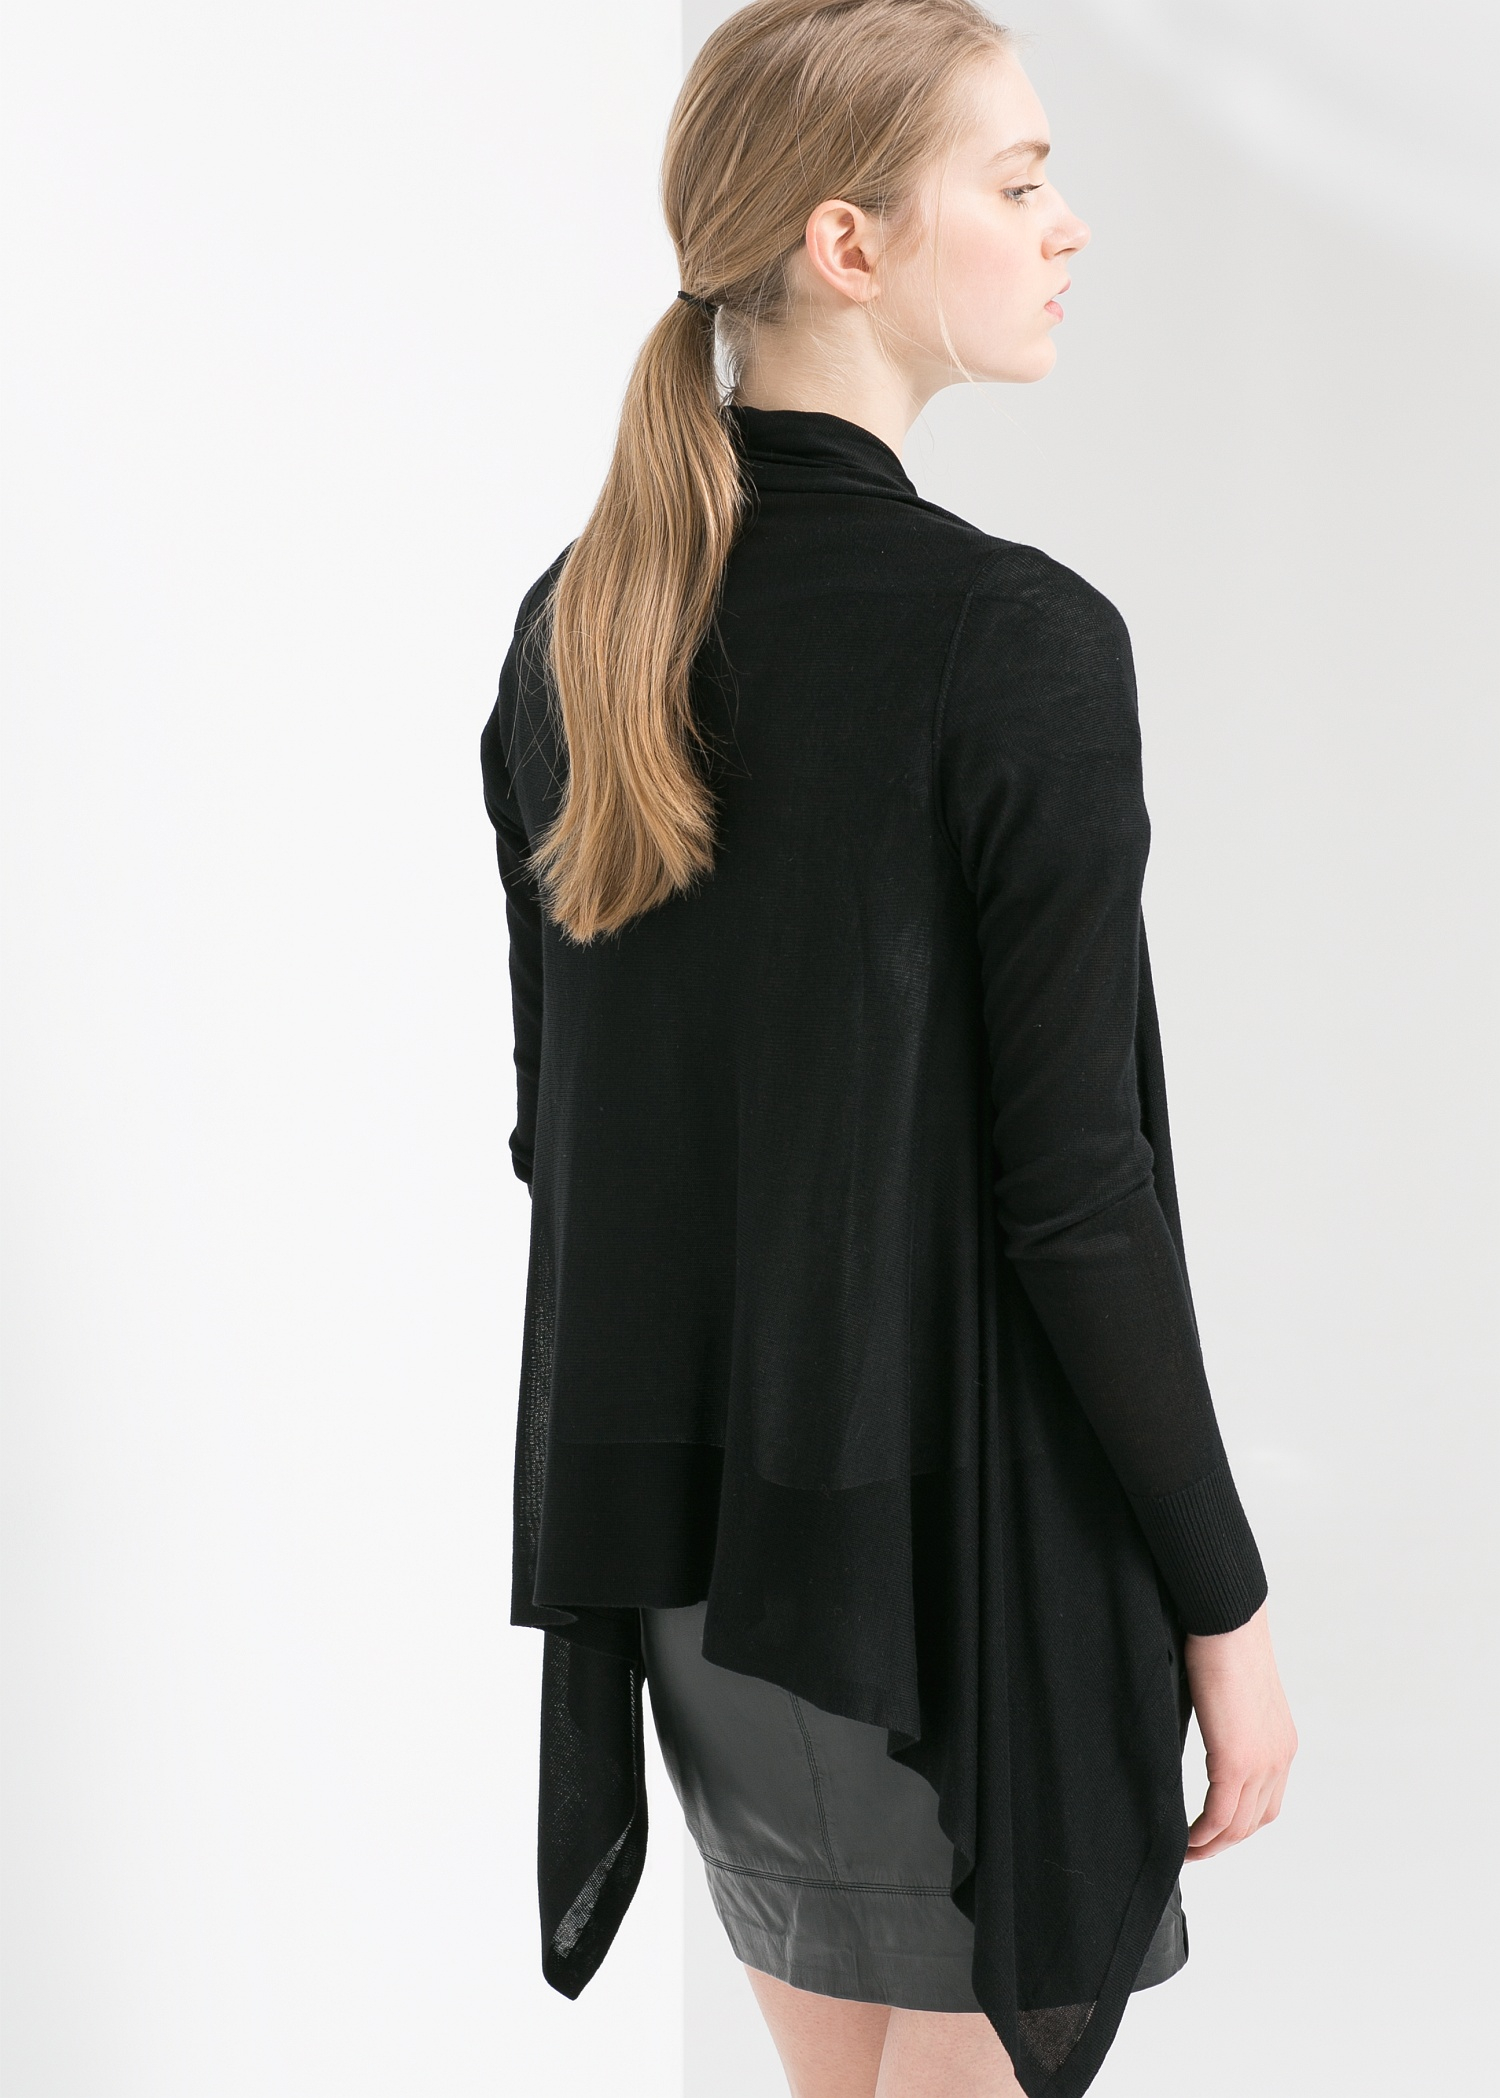 Mango Waterfall Cardigan in Black | Lyst